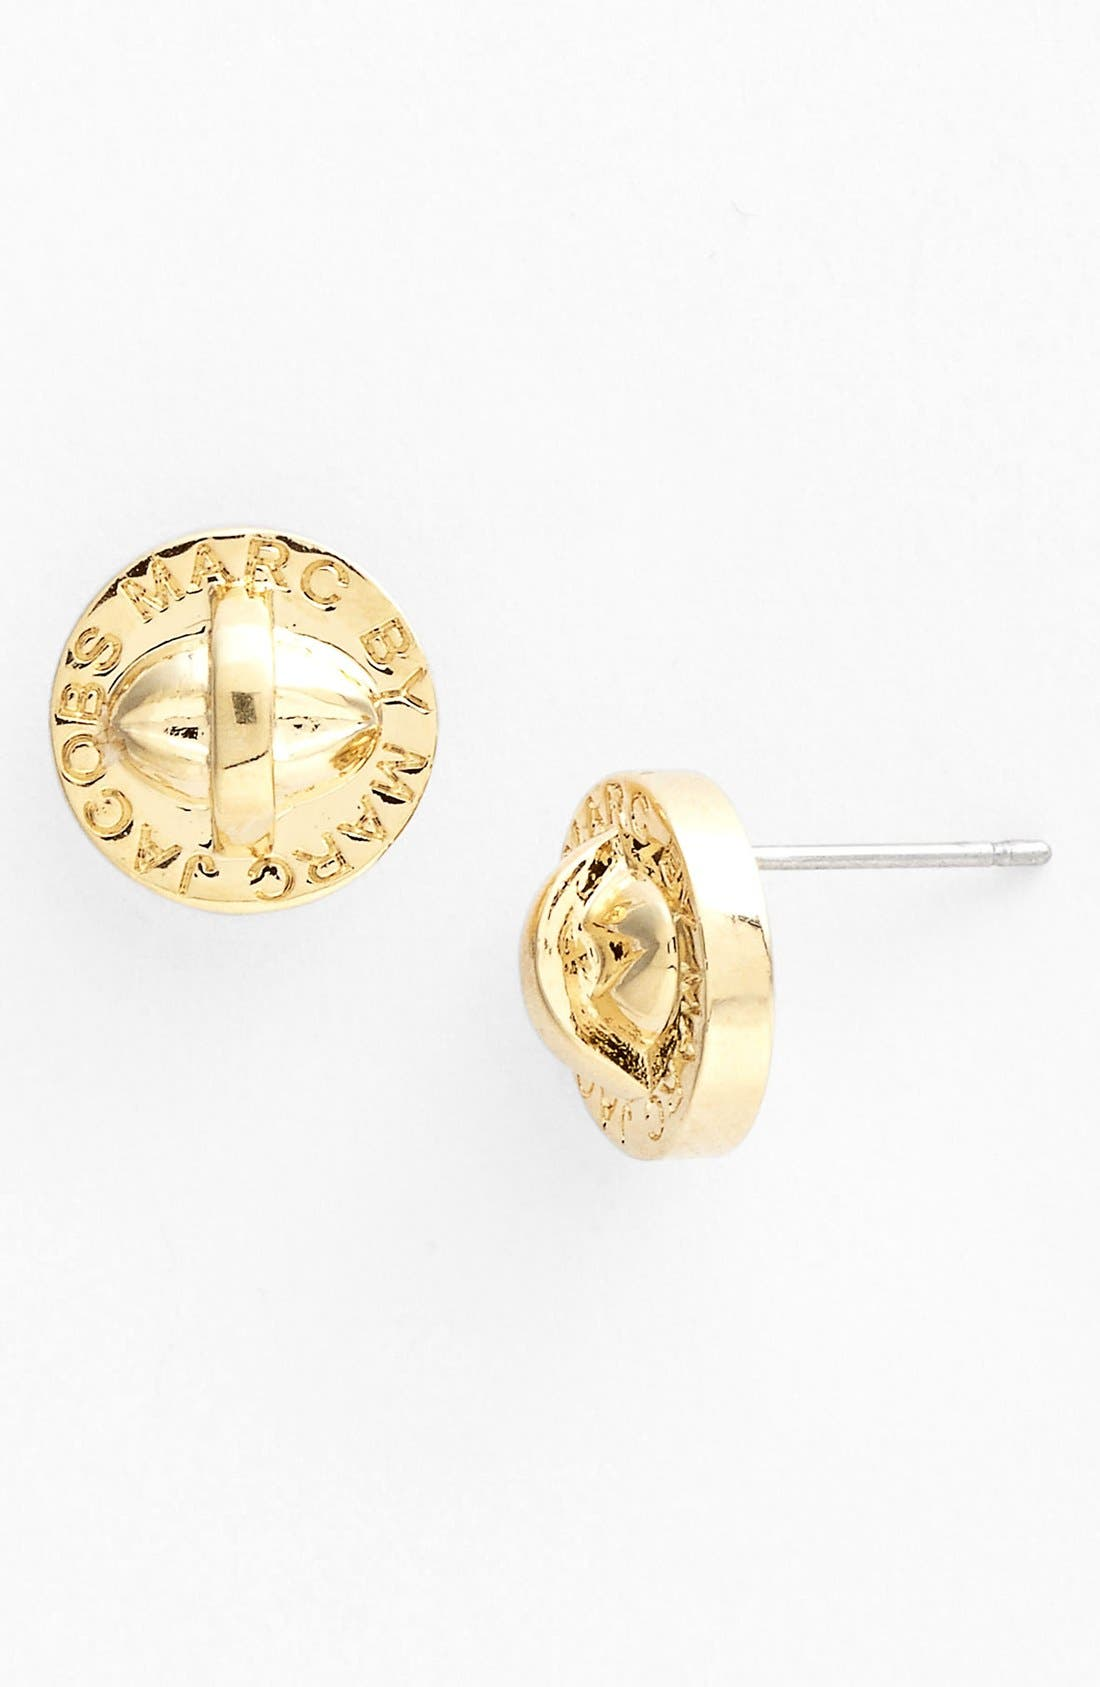 Alternate Image 1 Selected - MARC BY MARC JACOBS 'Turnlock' Large Stud Earrings (Nordstrom Exclusive)